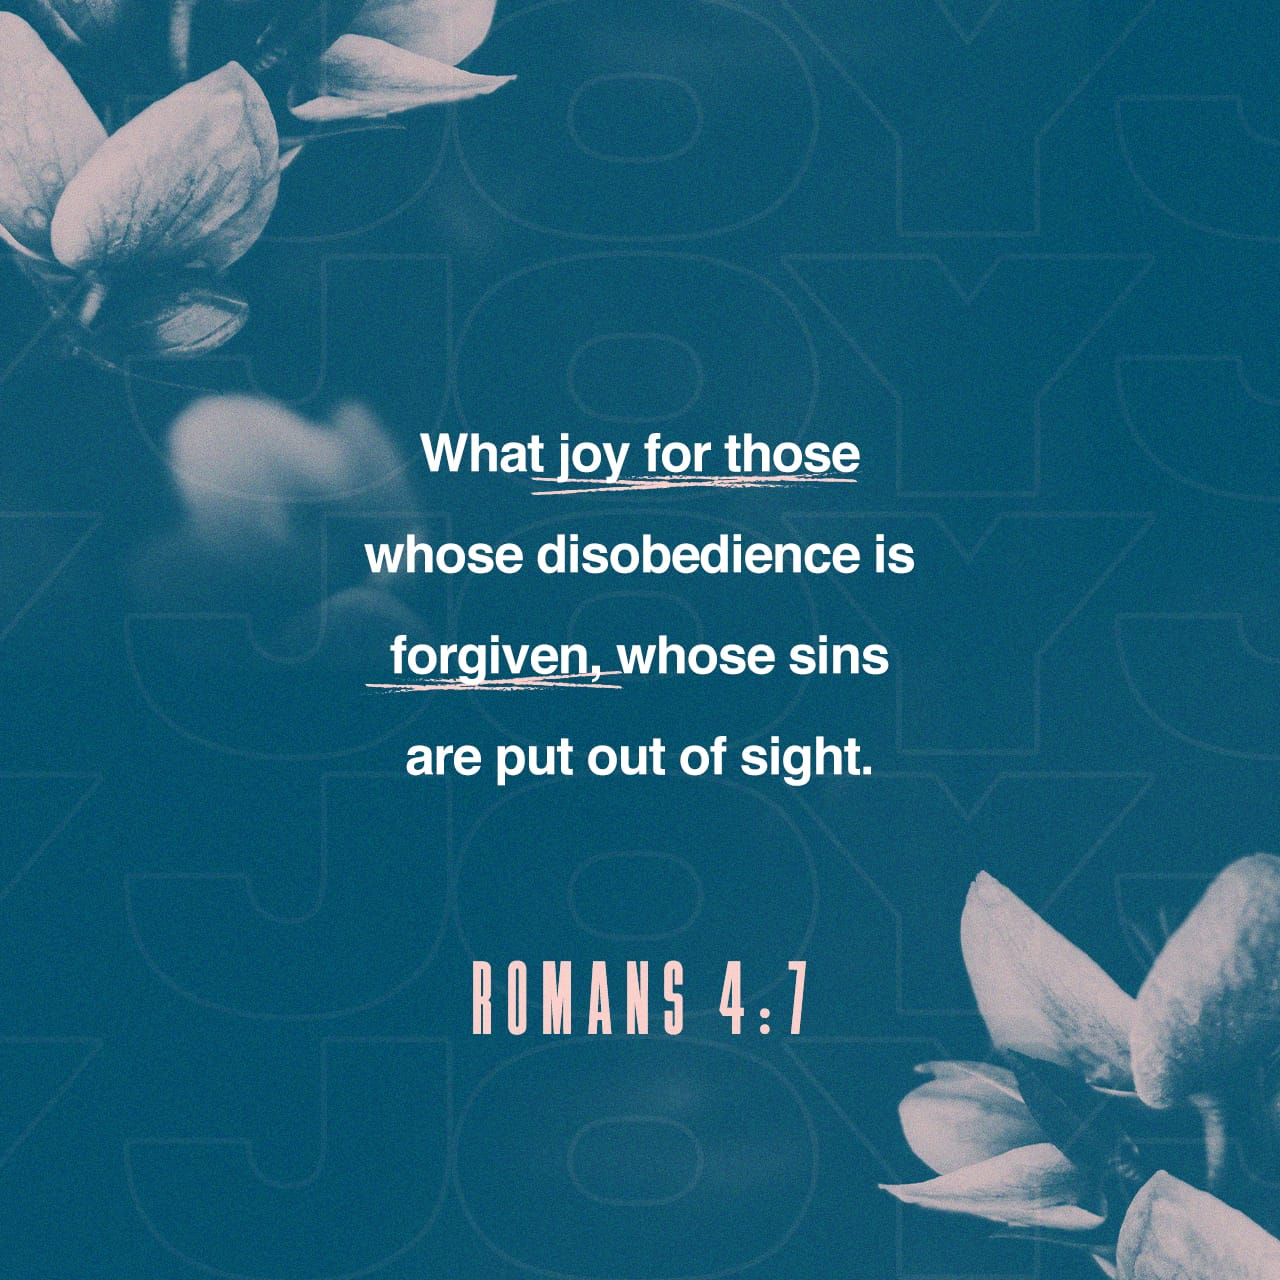 Romans 4:7 Saying, Blessed are they whose iniquities are forgiven, and whose sins are covered. | King James Version (KJV)